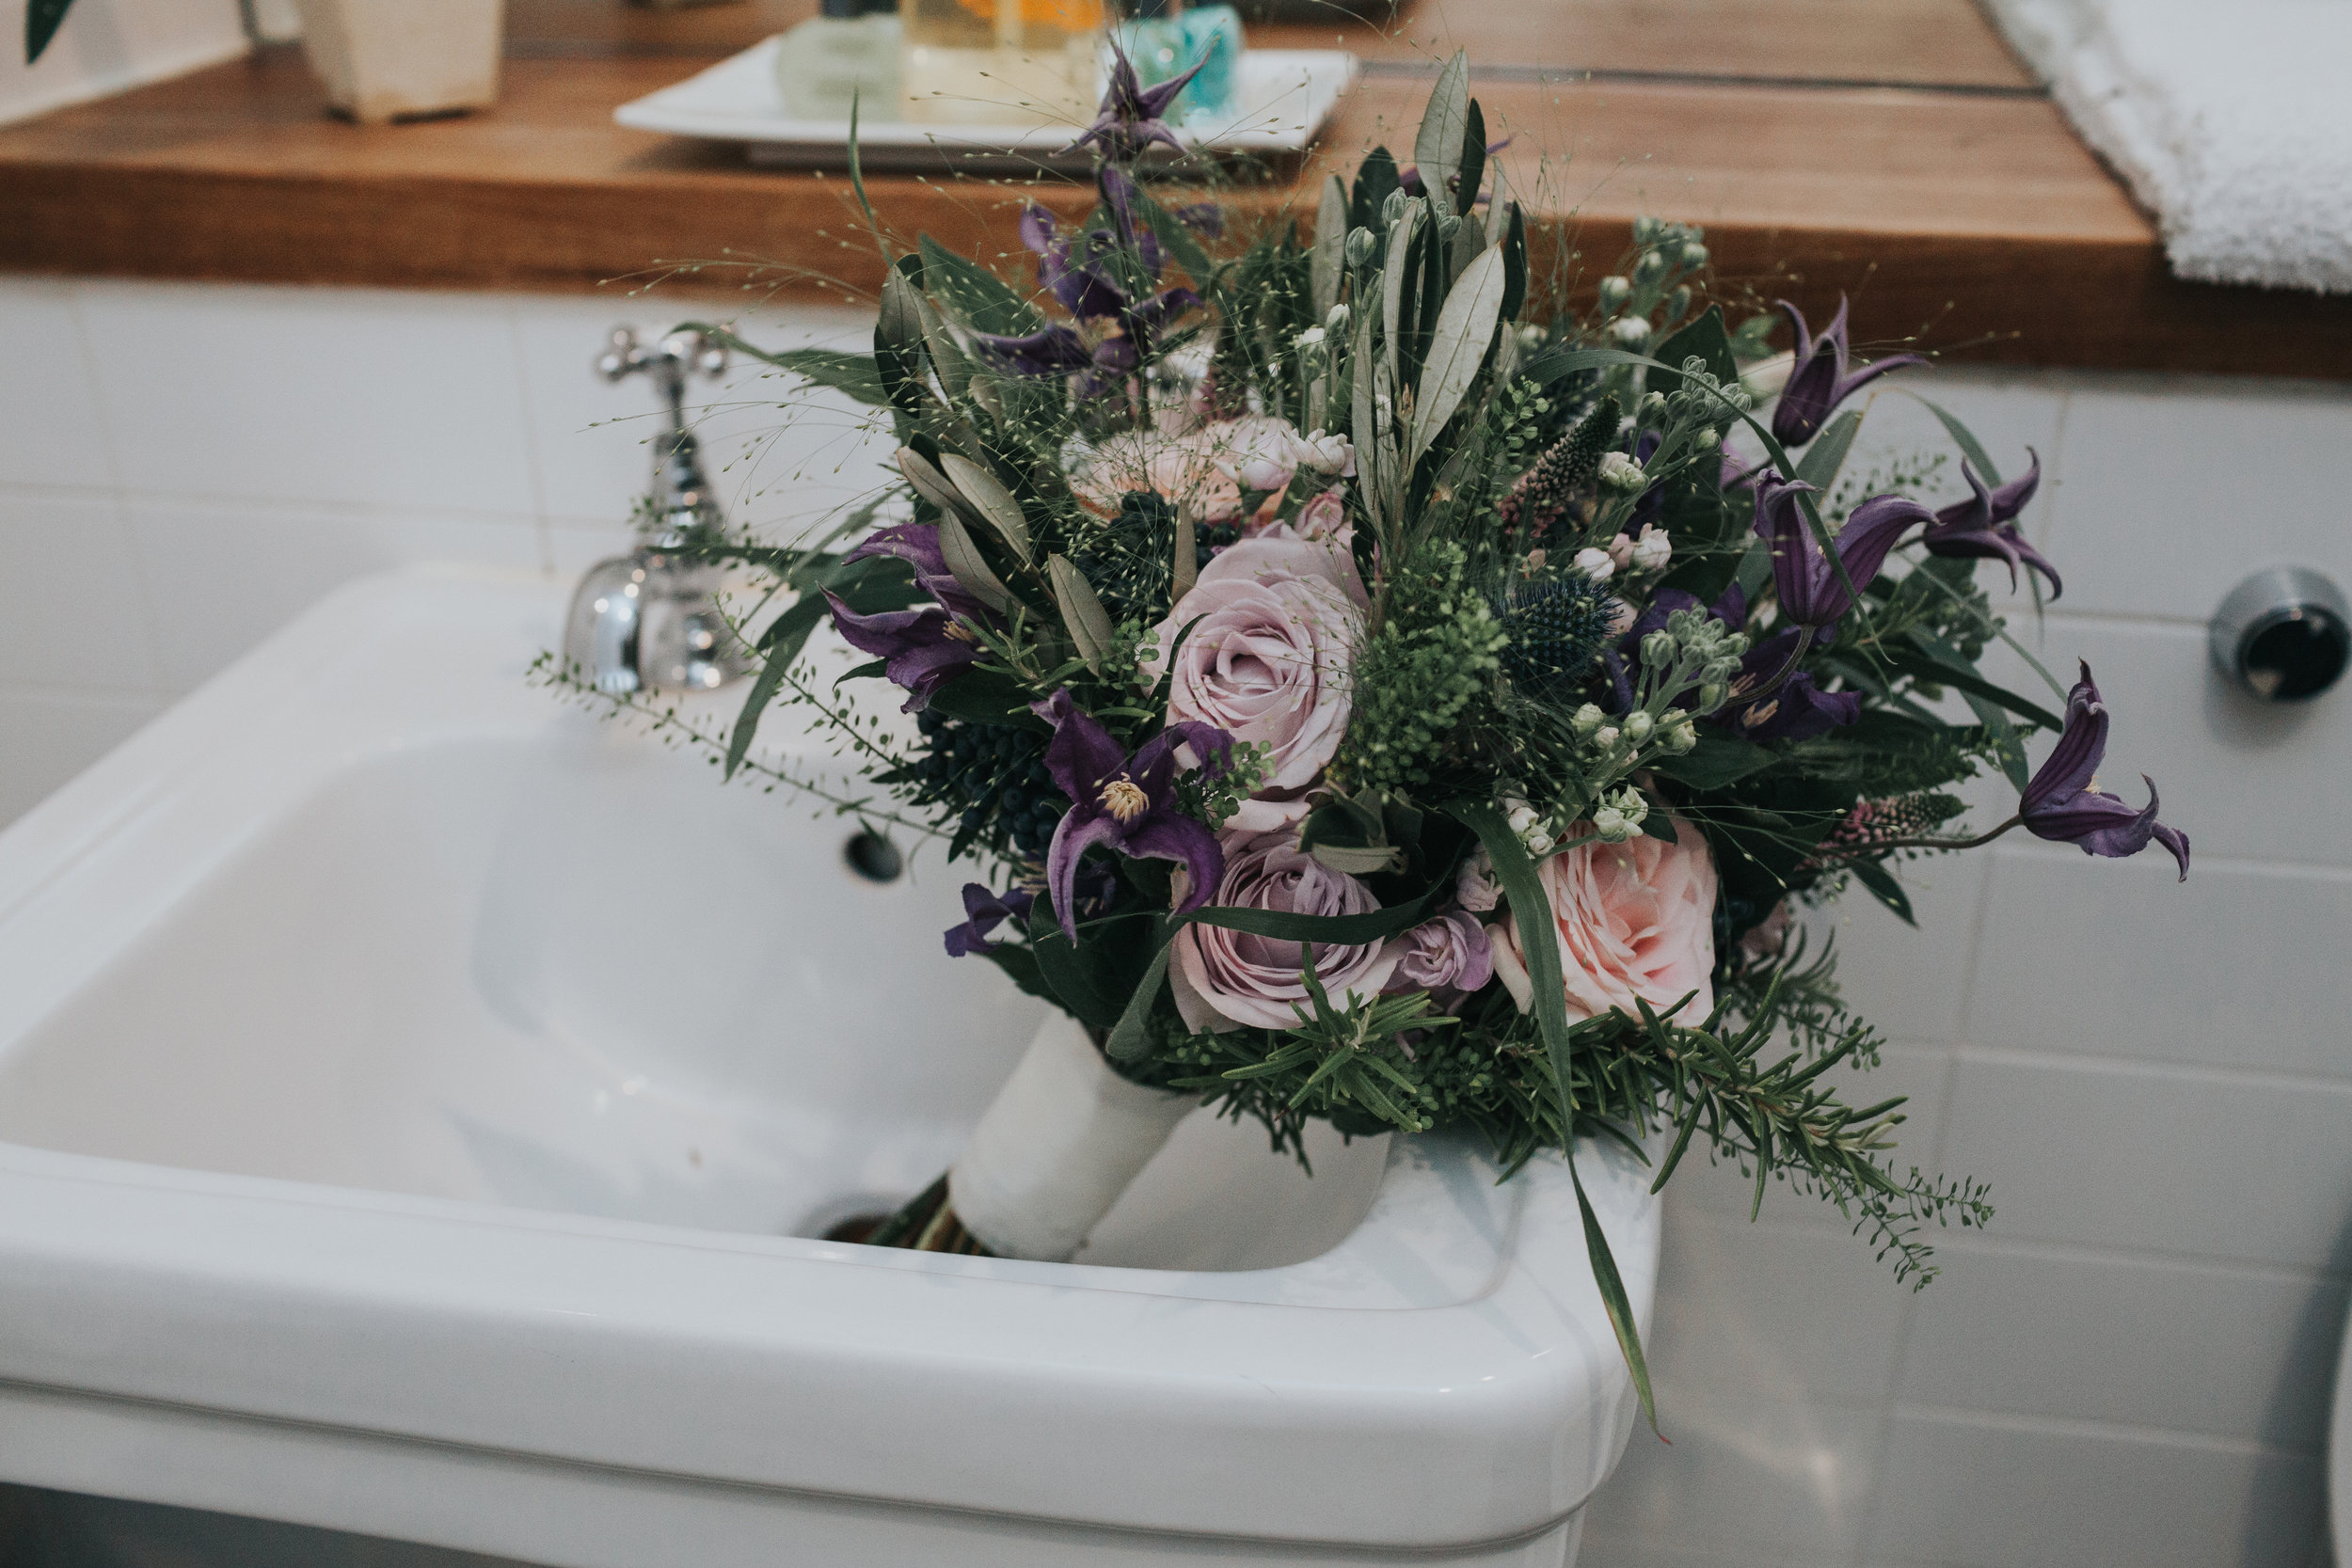 Flowers in sink of hotel room in The Racquet Club Liverpool.